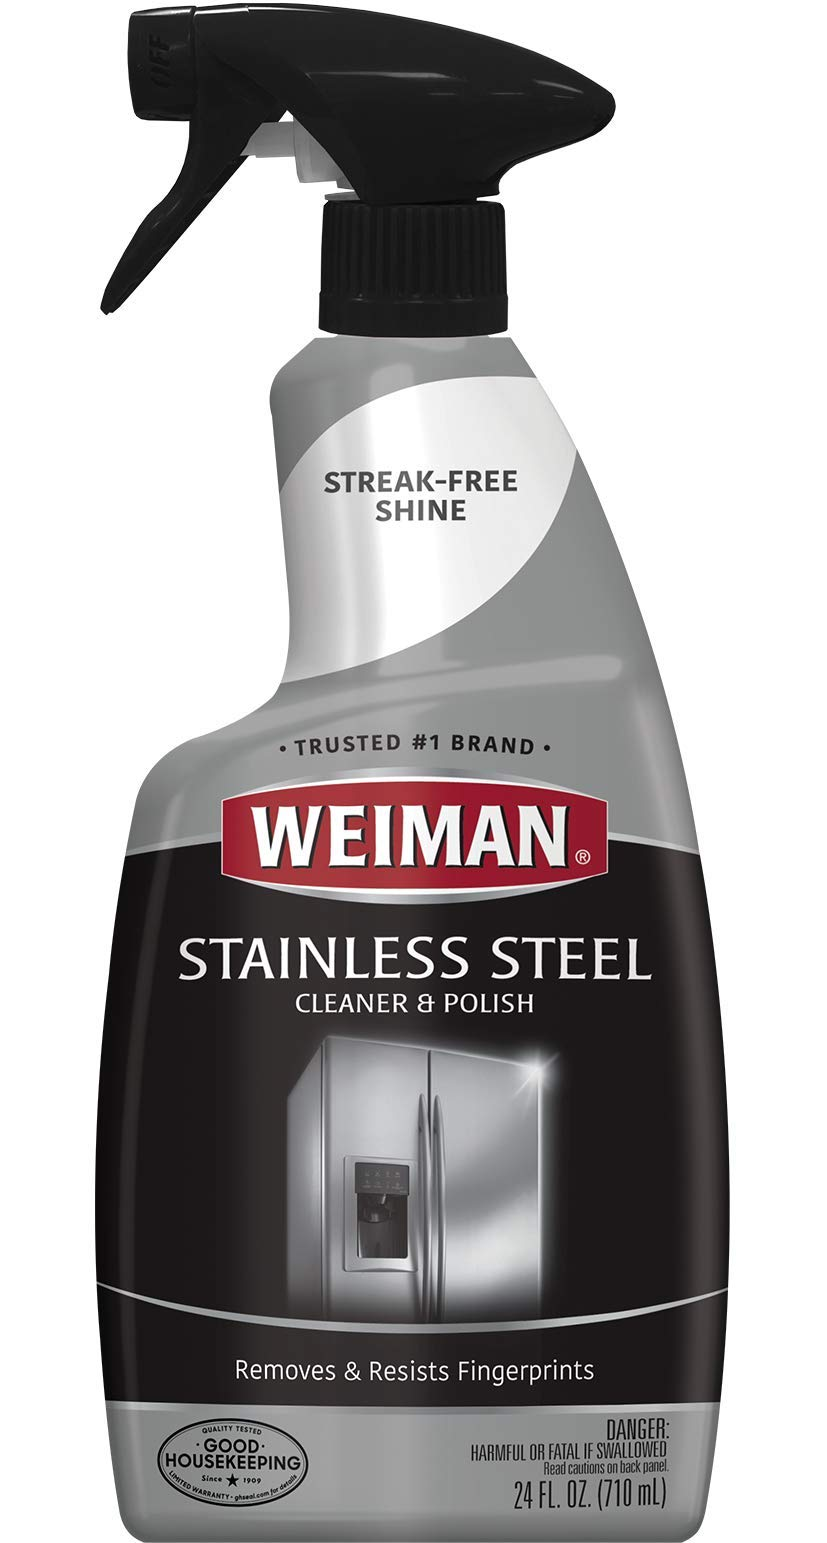 Weiman Stainless Steel Cleaner & Polish 22 fl oz - 6 pack by Weiman